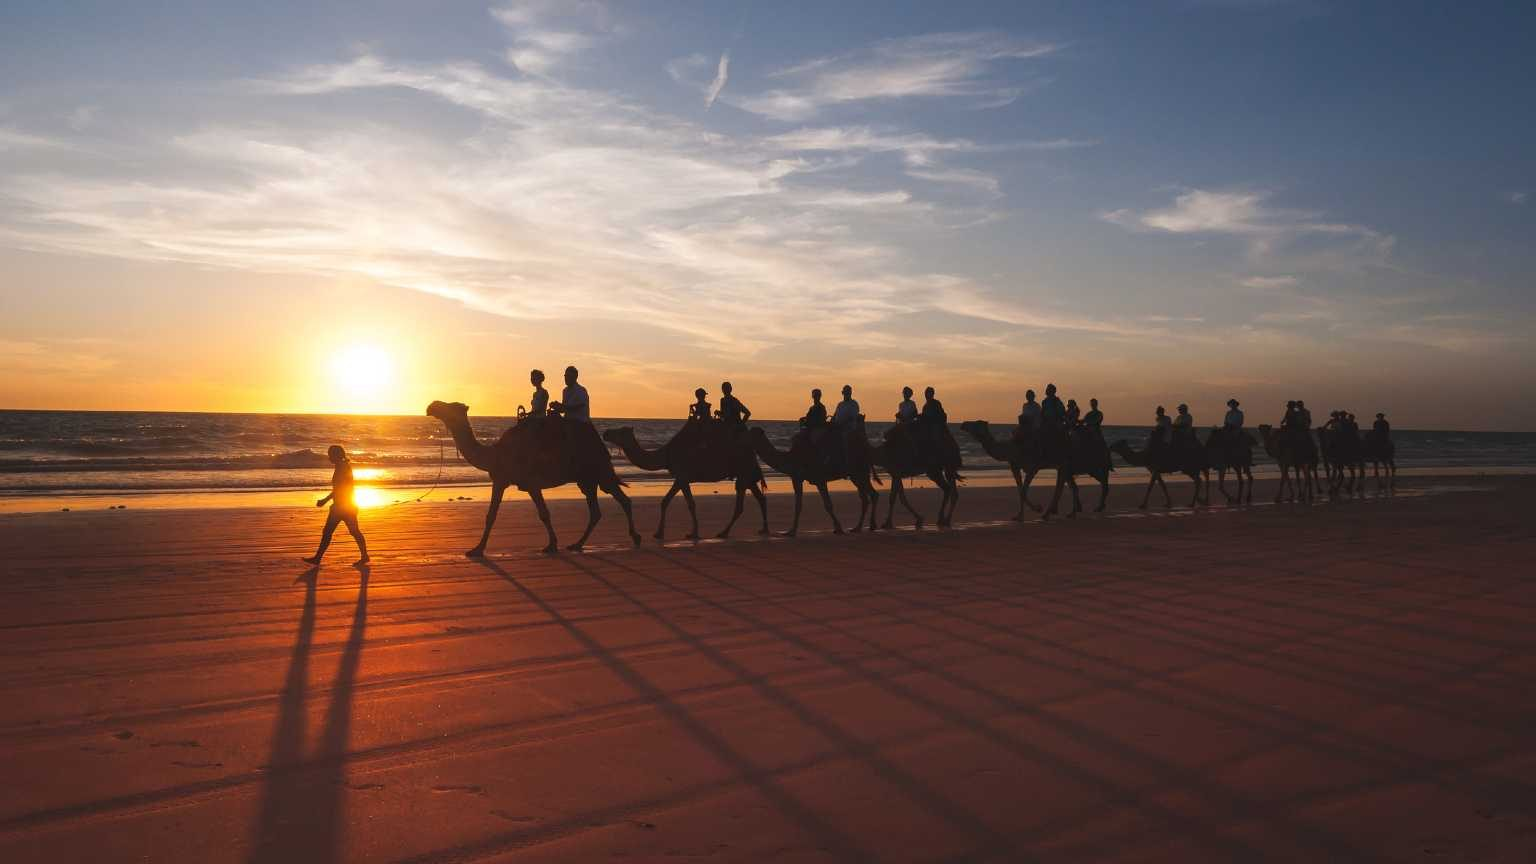 tourists taking a camel trip on the beach in broome, australia